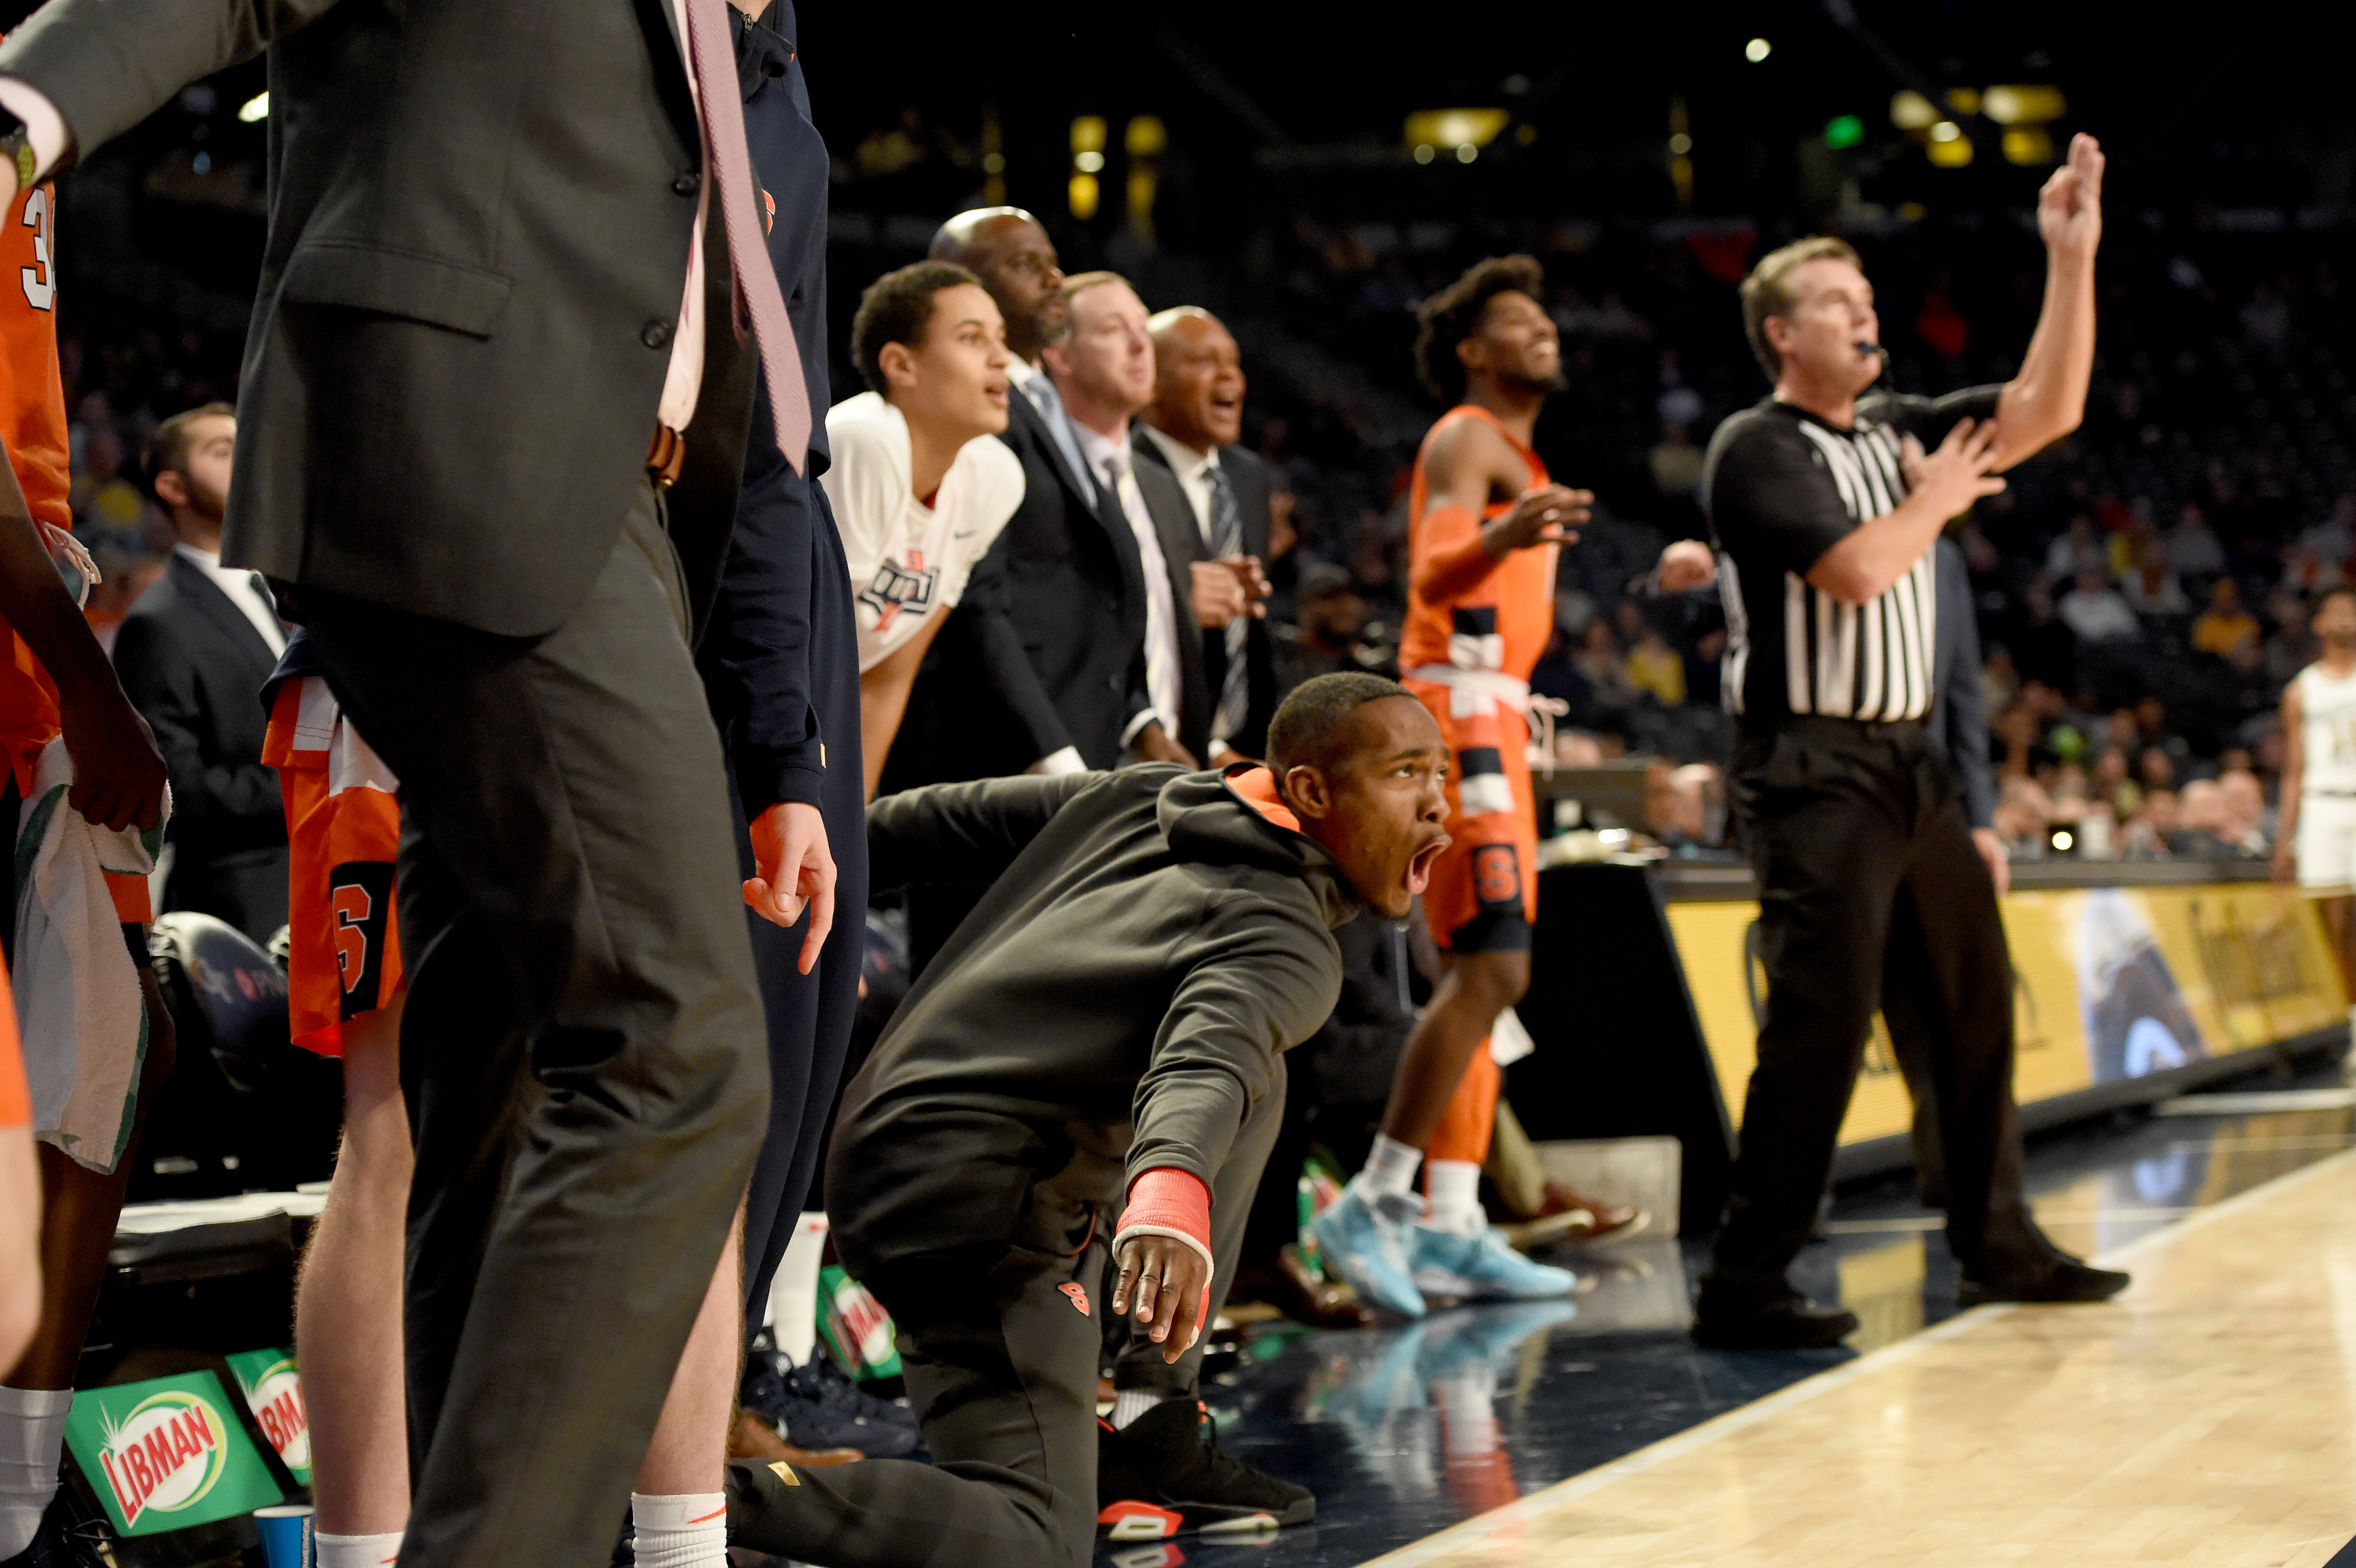 After loss to Iowa, Syracuse players vowed to 'hold each other accountable' and have some fun